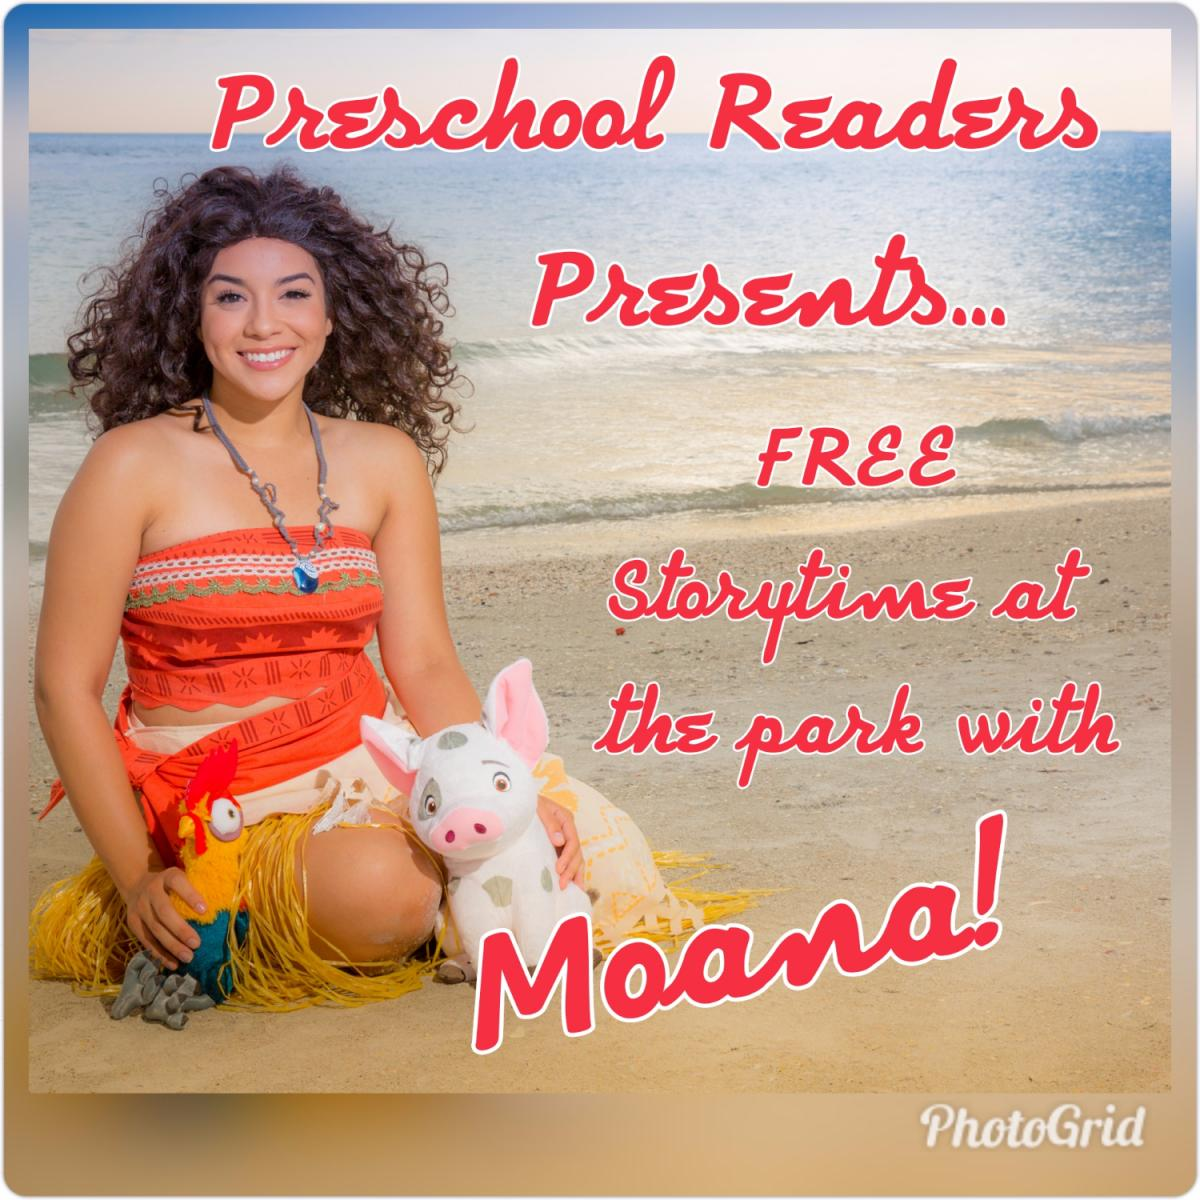 Preschool Readers Presents... FREE Storytime at the Park with Moana!